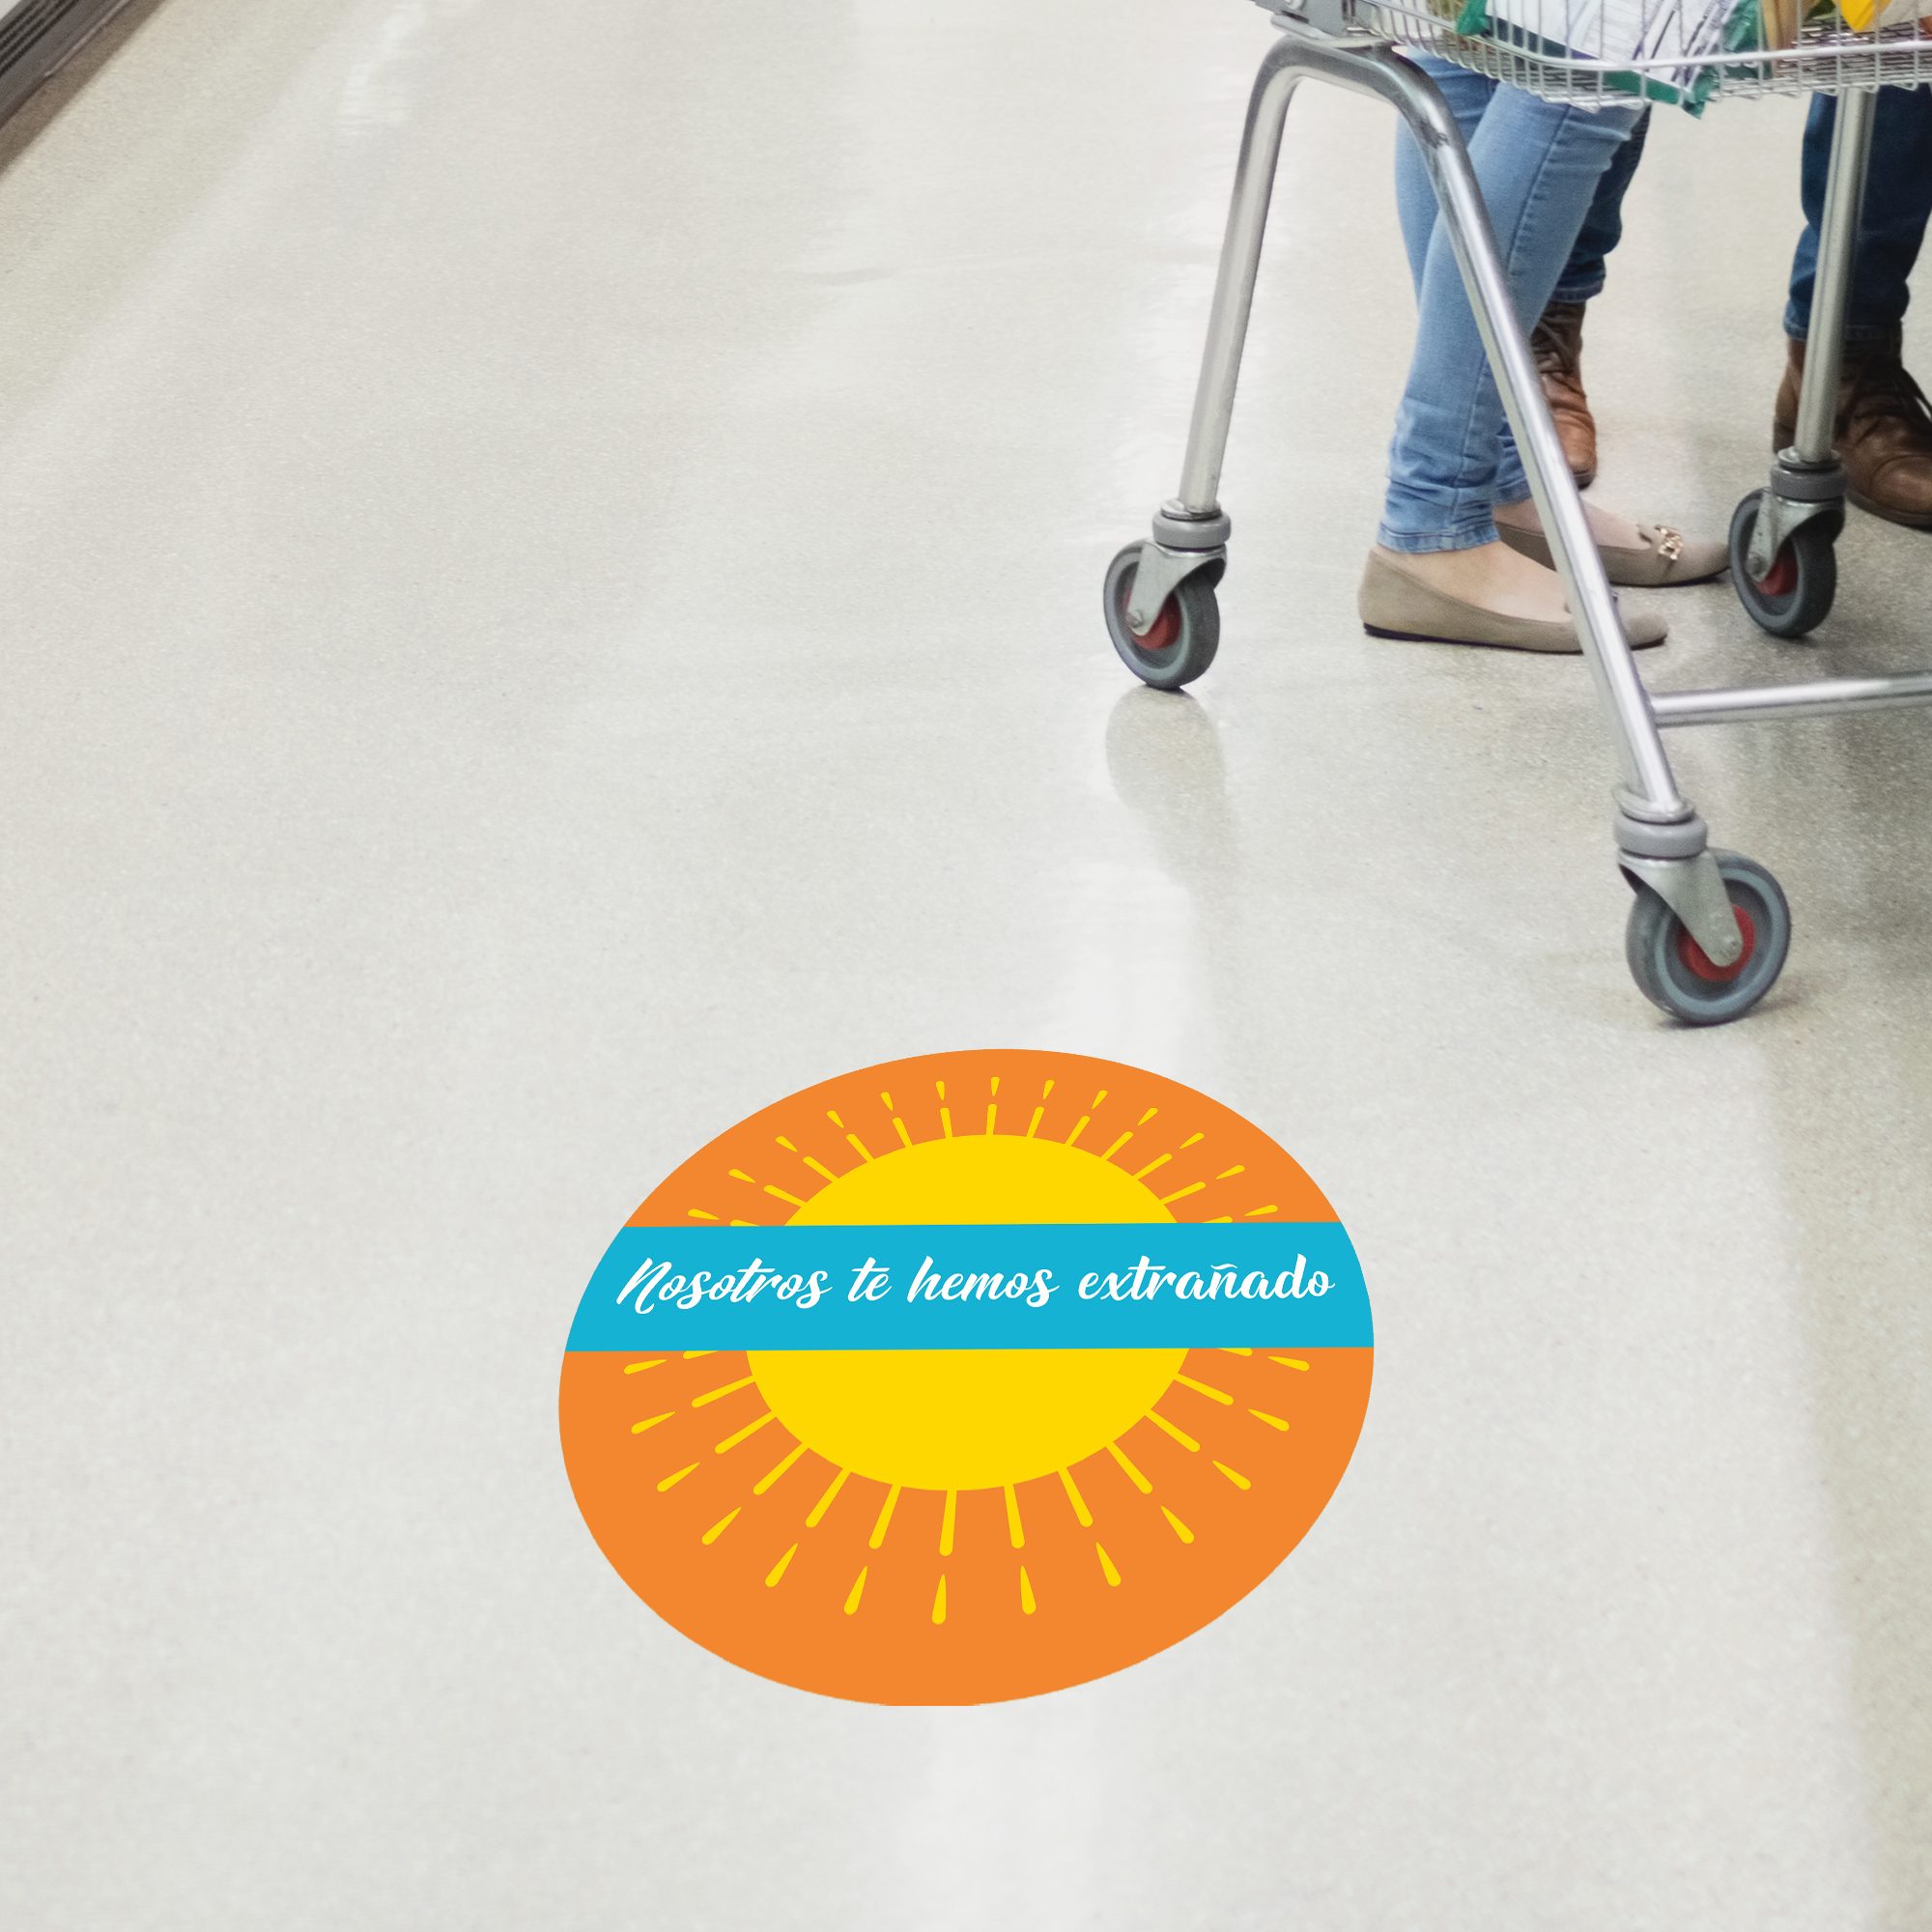 We've Missed You Spanish Set Business Reopening Floor Decal